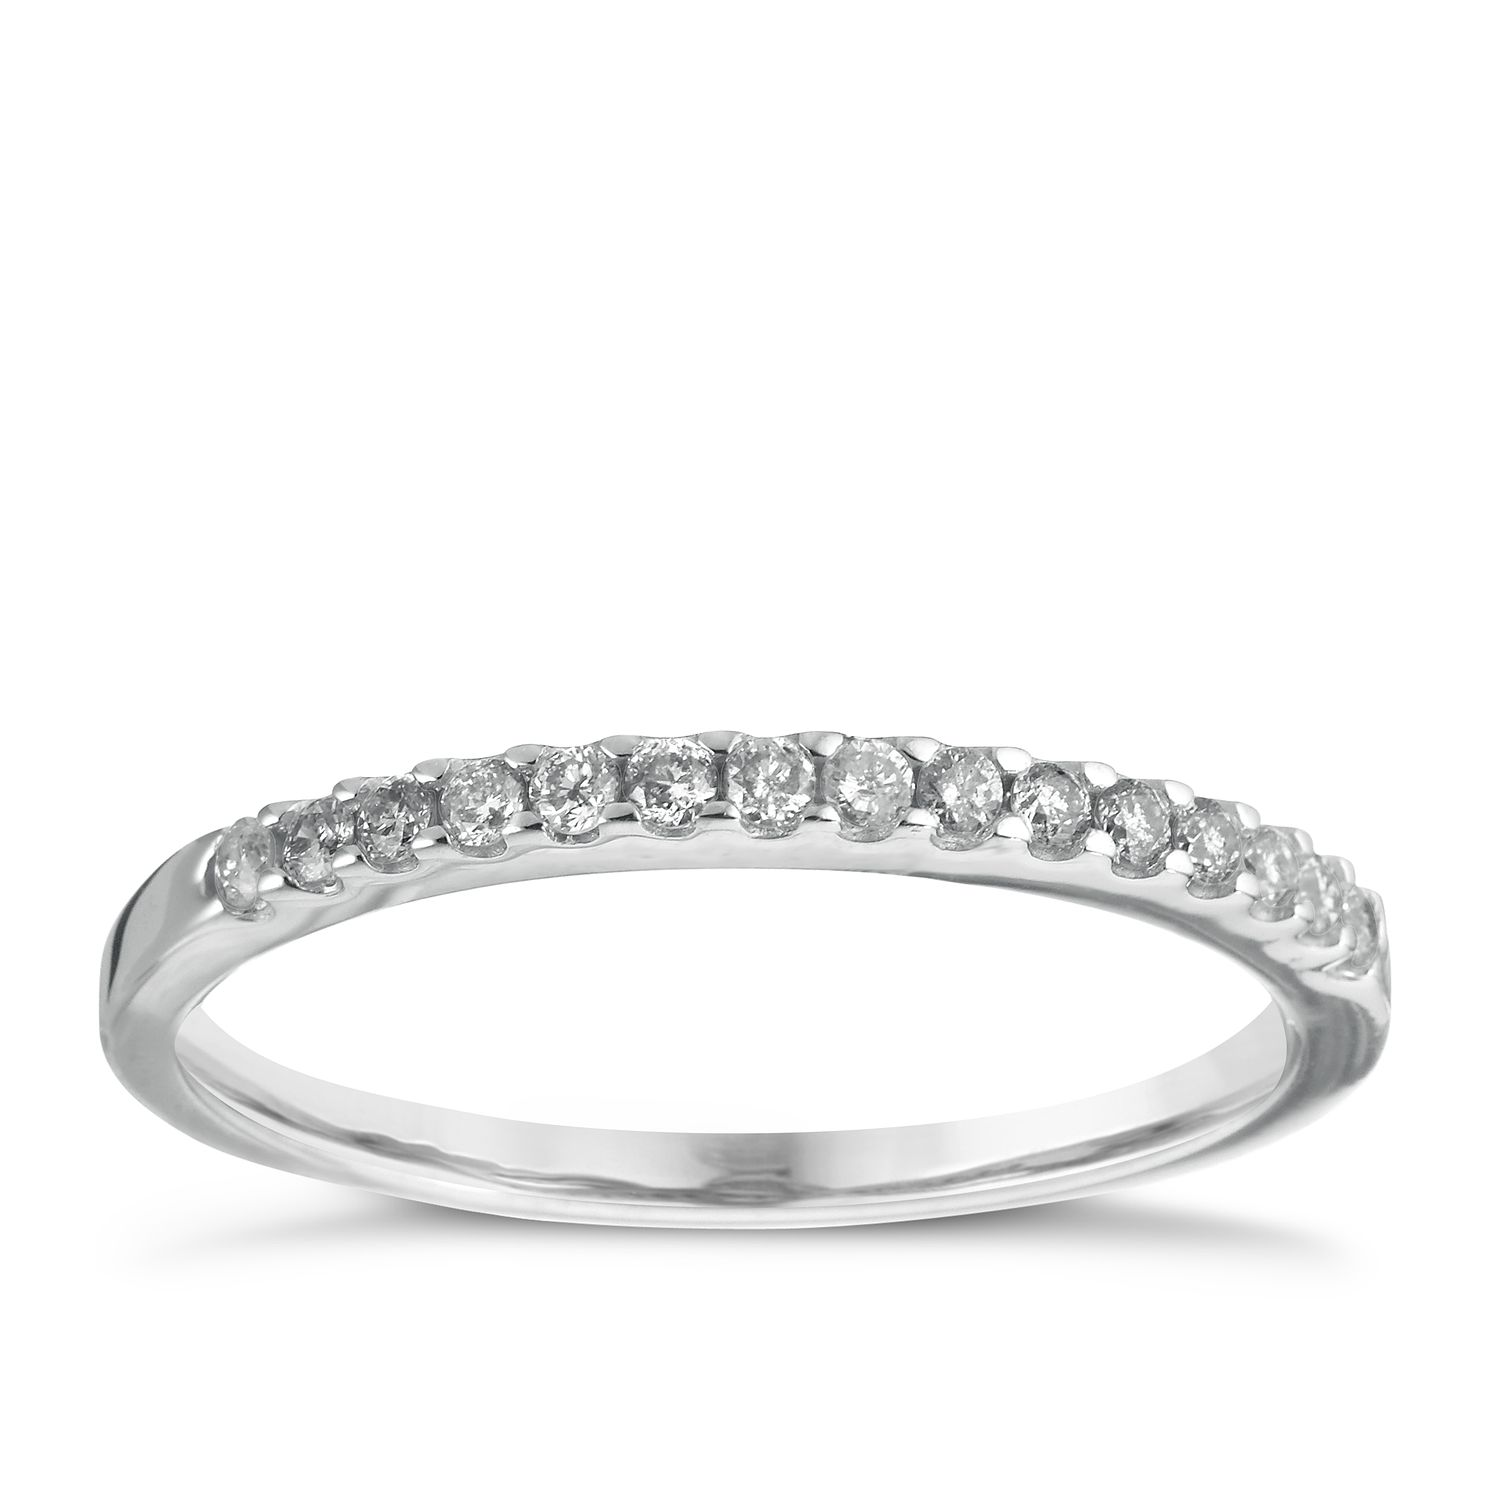 stunning bands rings special plus wedding choice for diamond jewellery event anniversary